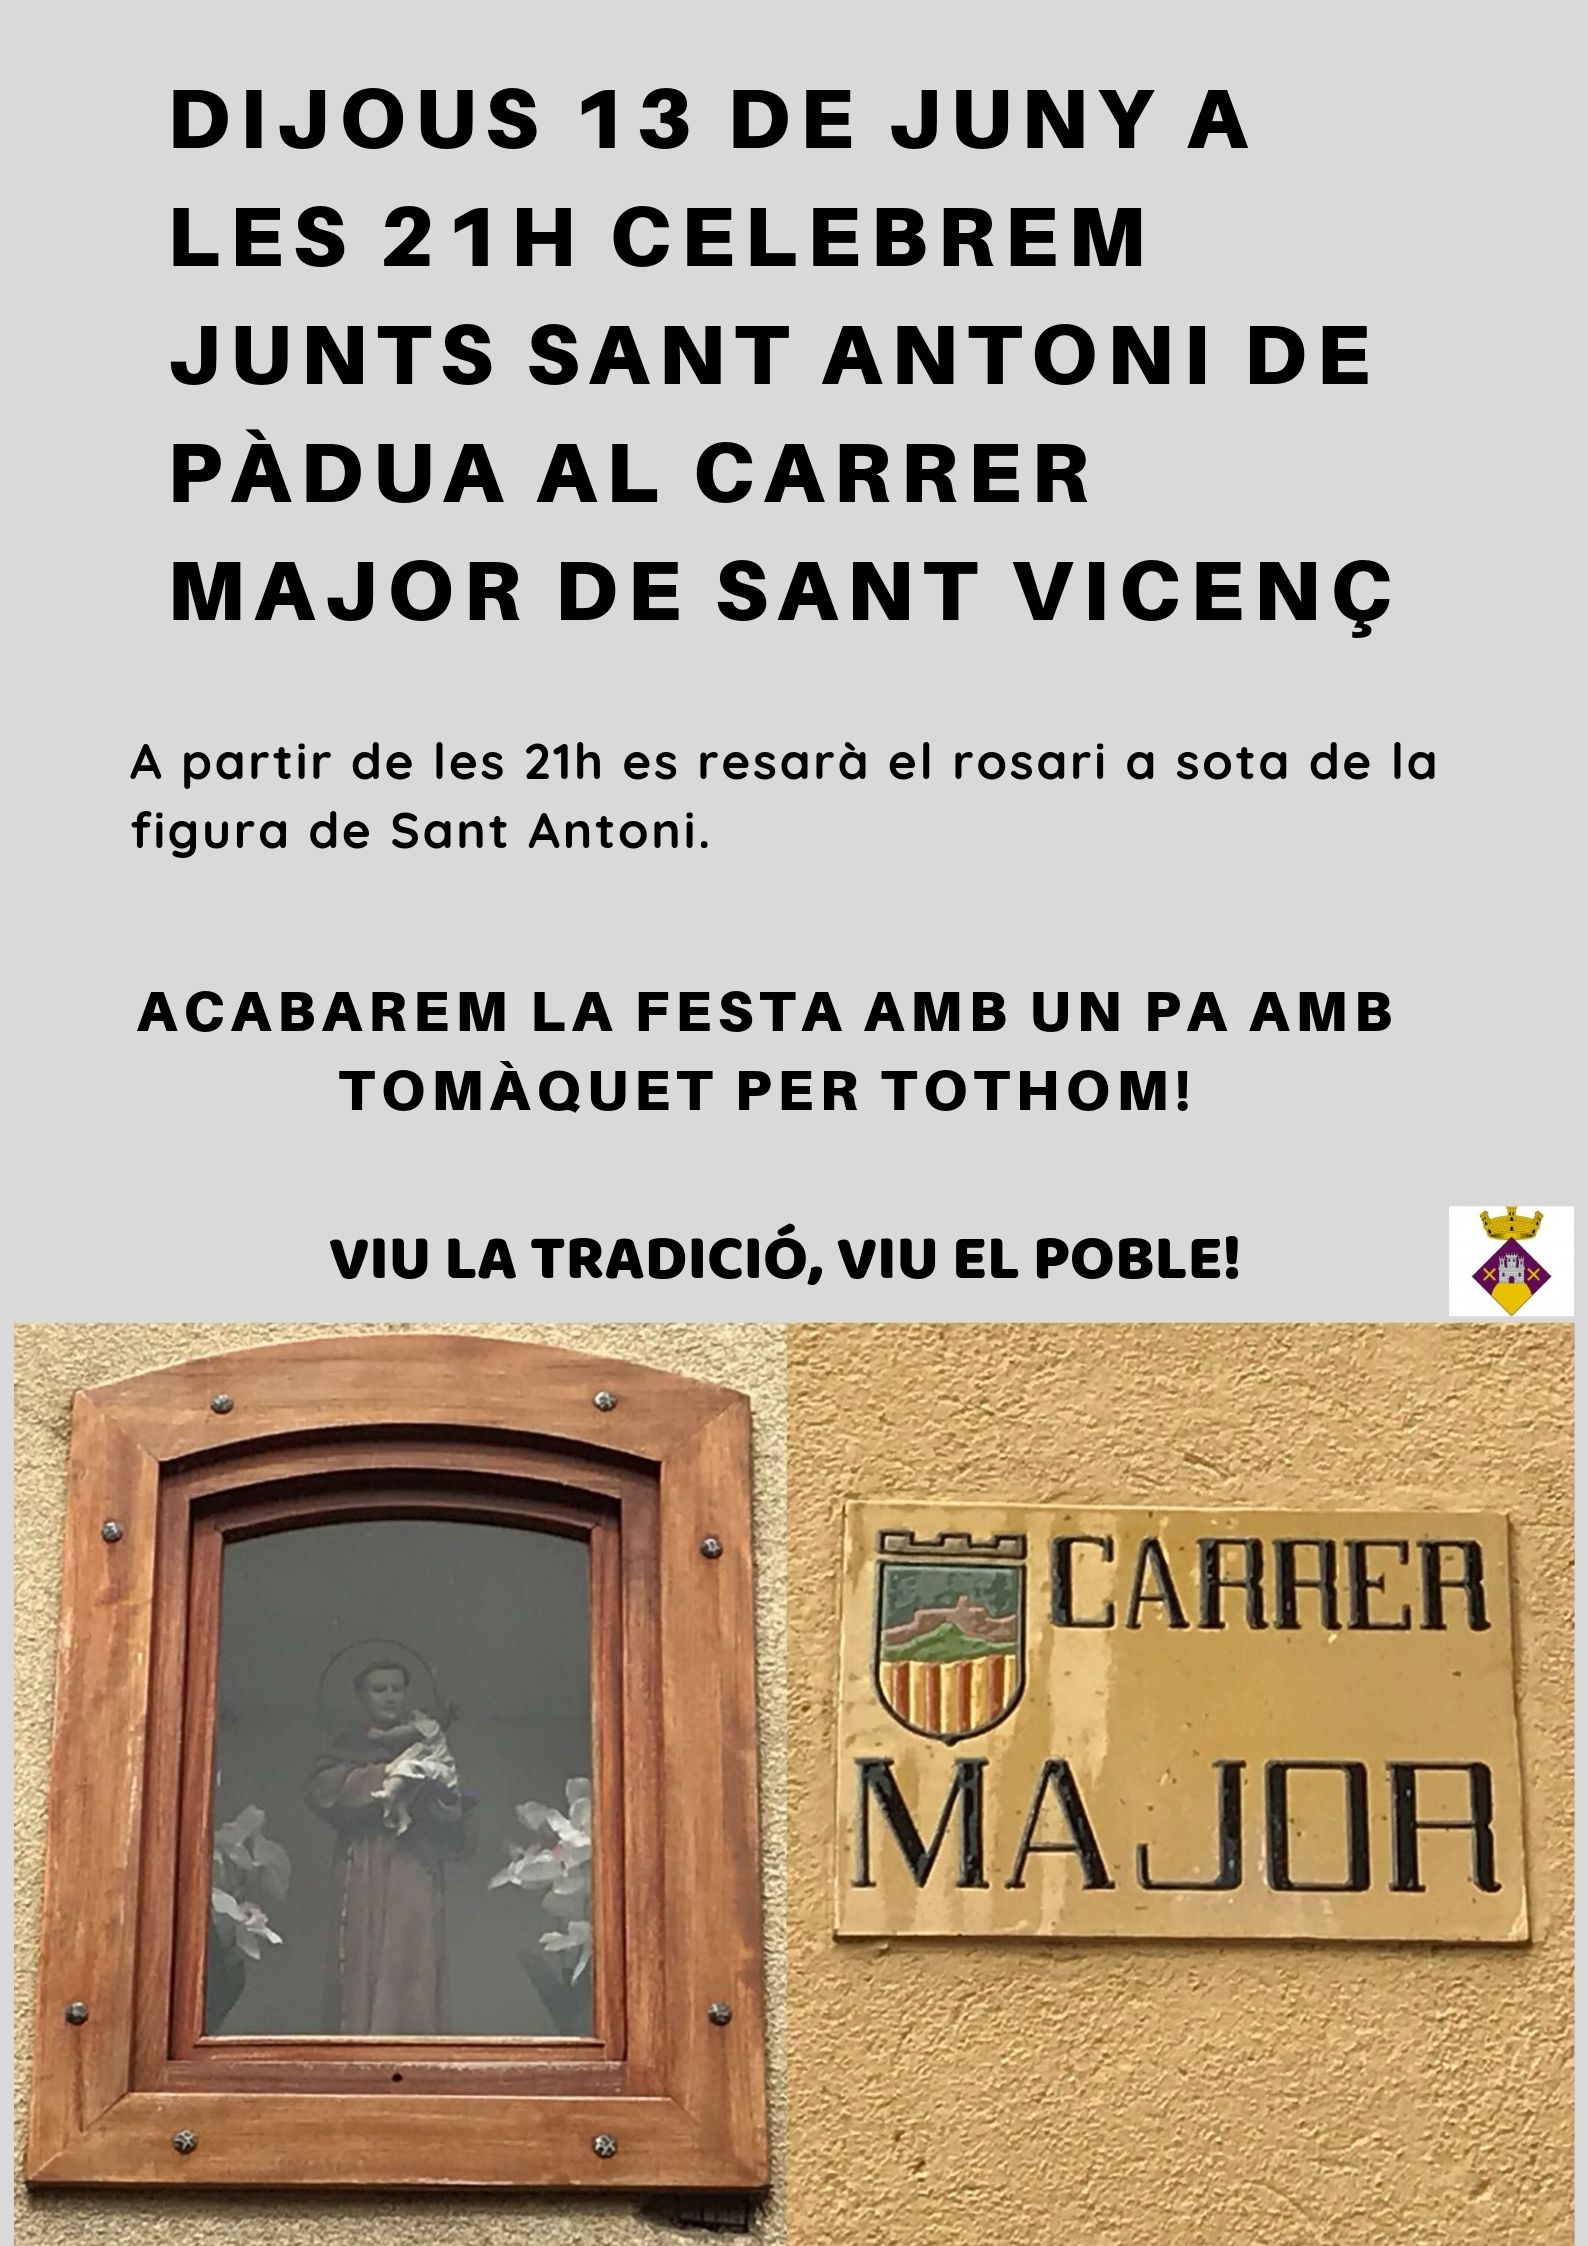 Sant Antoni de Pàdua al Carrer Major